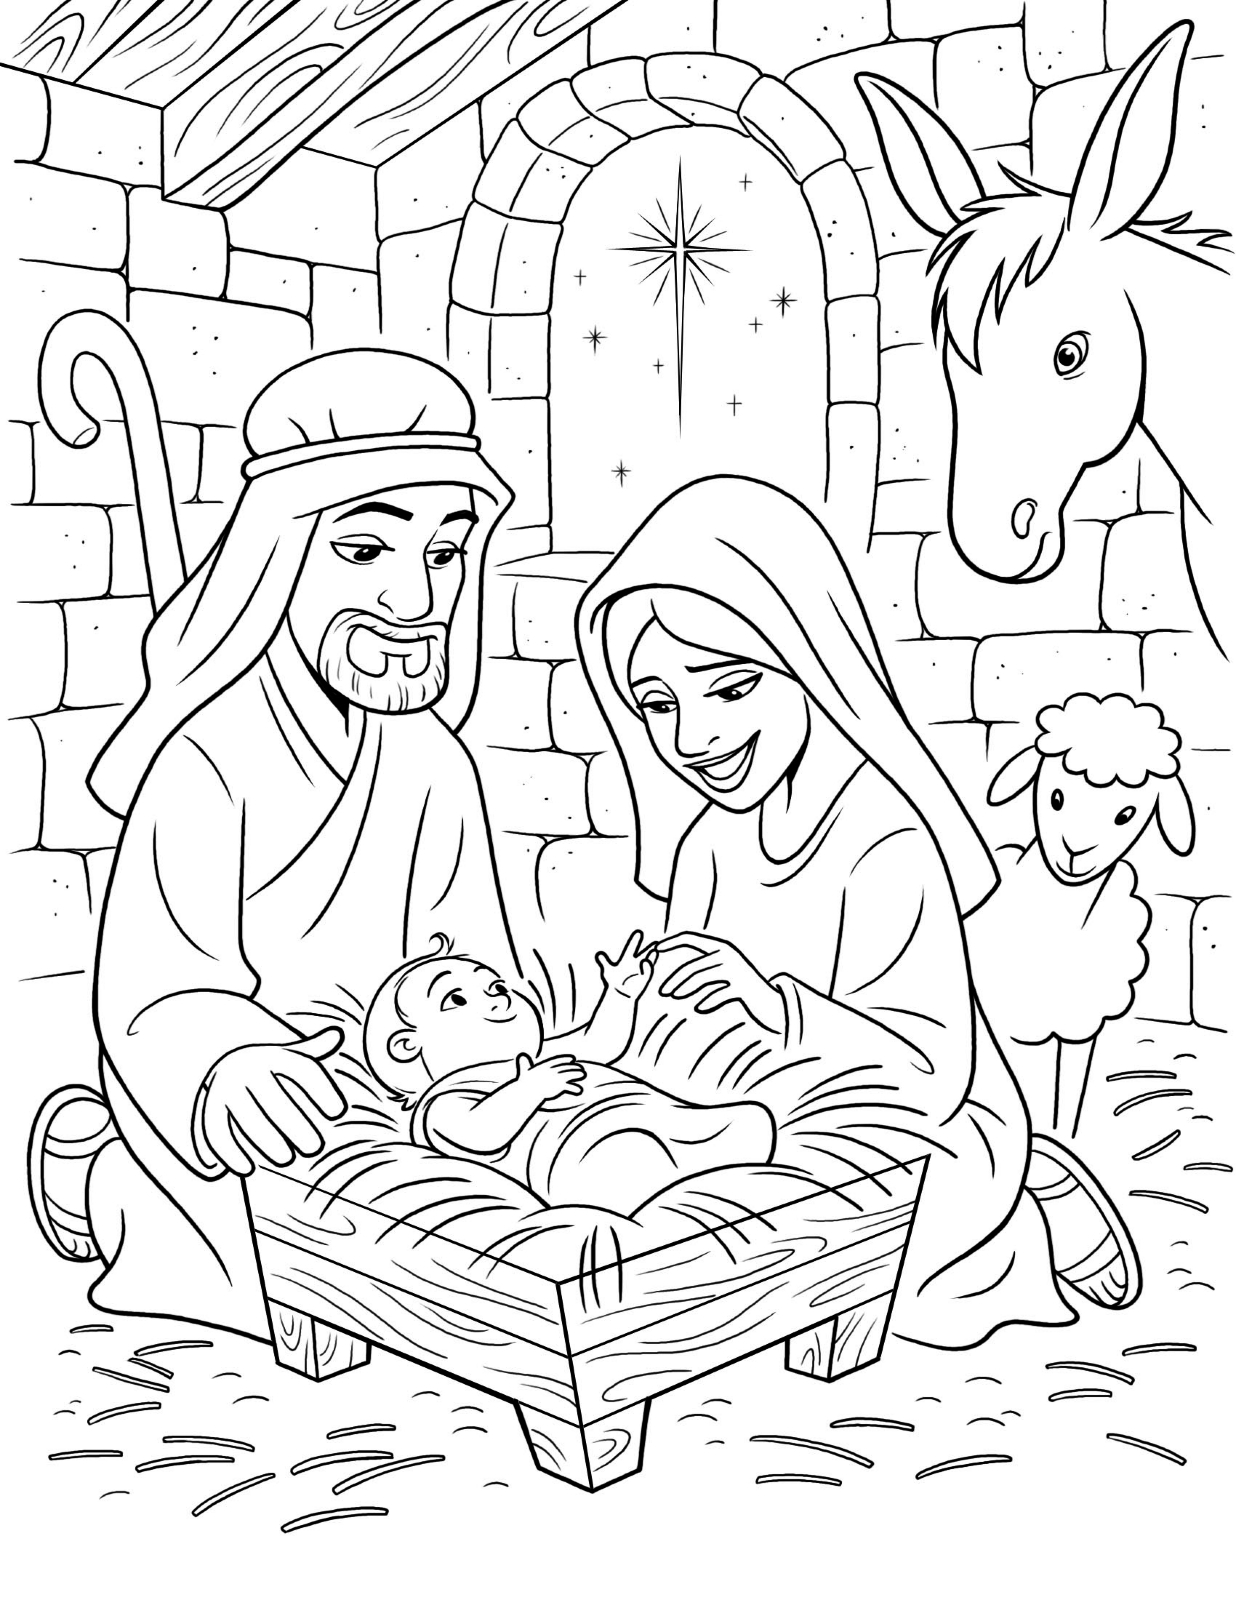 coloring pageschristmas - Primary Coloring Pages